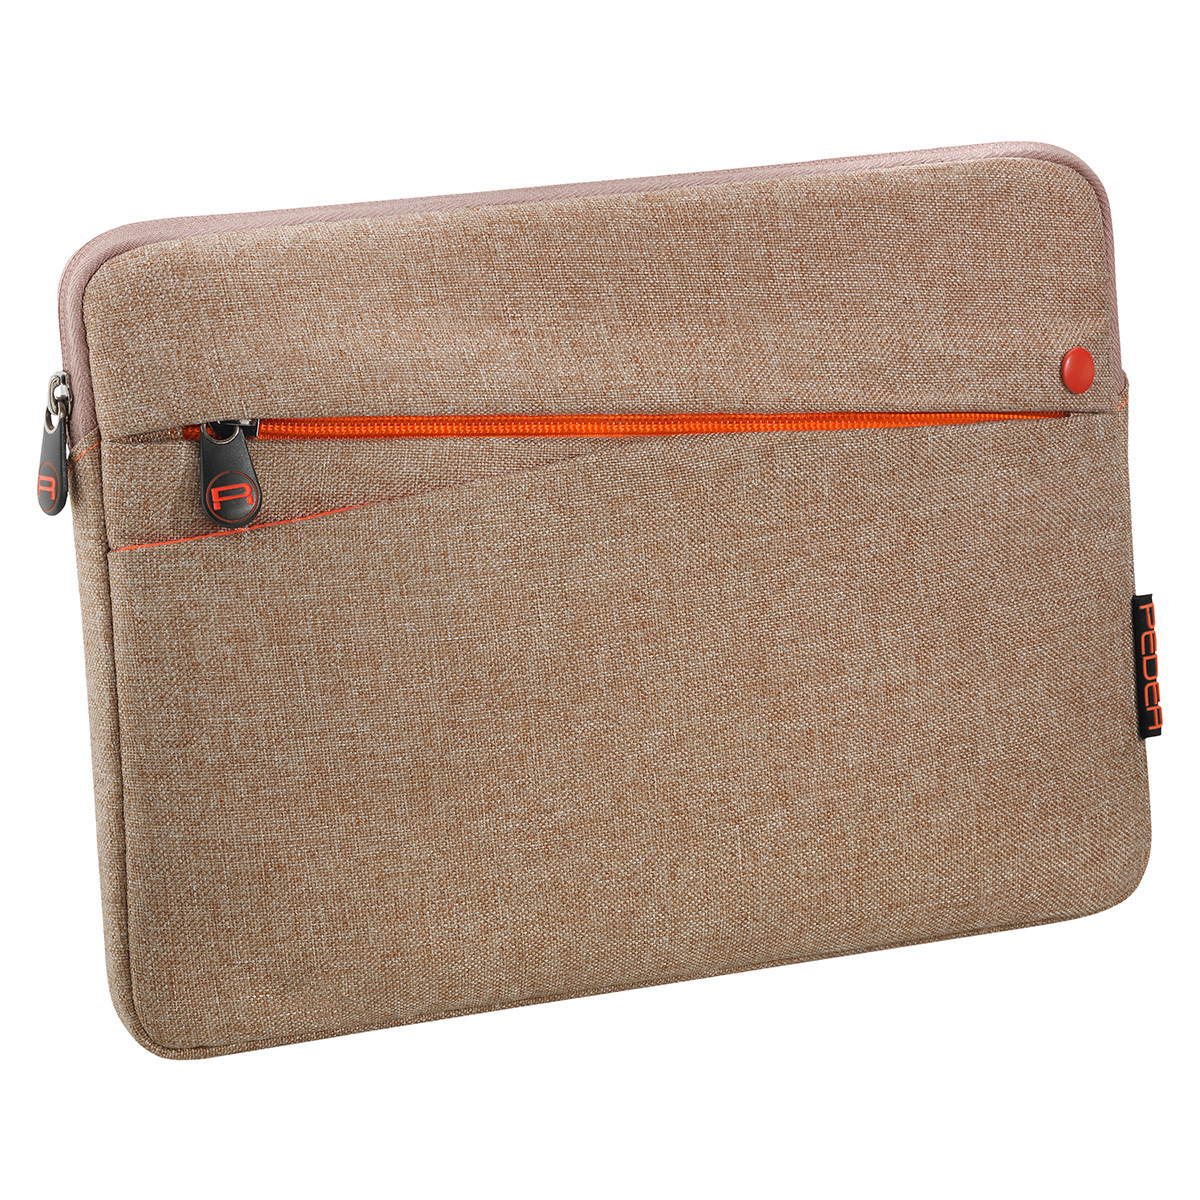 "PEDEA Tablet-Tasche 10,1"" (25,7cm) beige ""Fashion"""